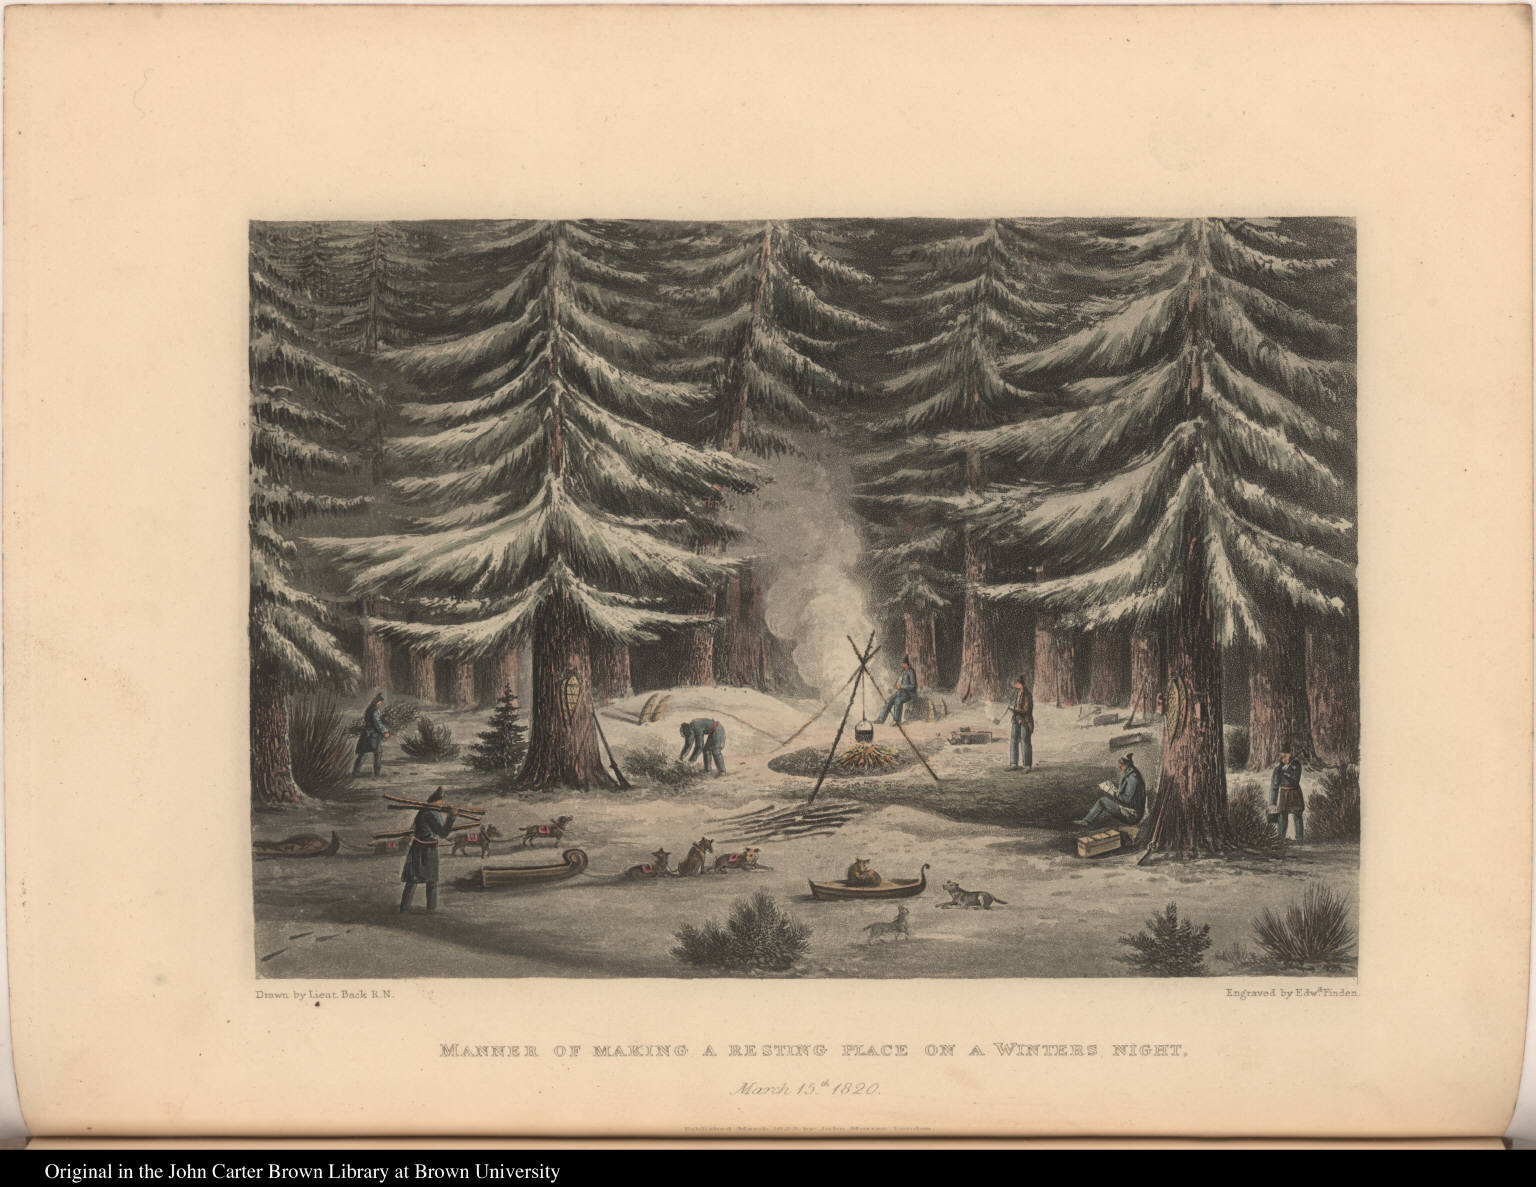 Manner of Making a Resting Place on a Winters Night. March 15th. 1820.